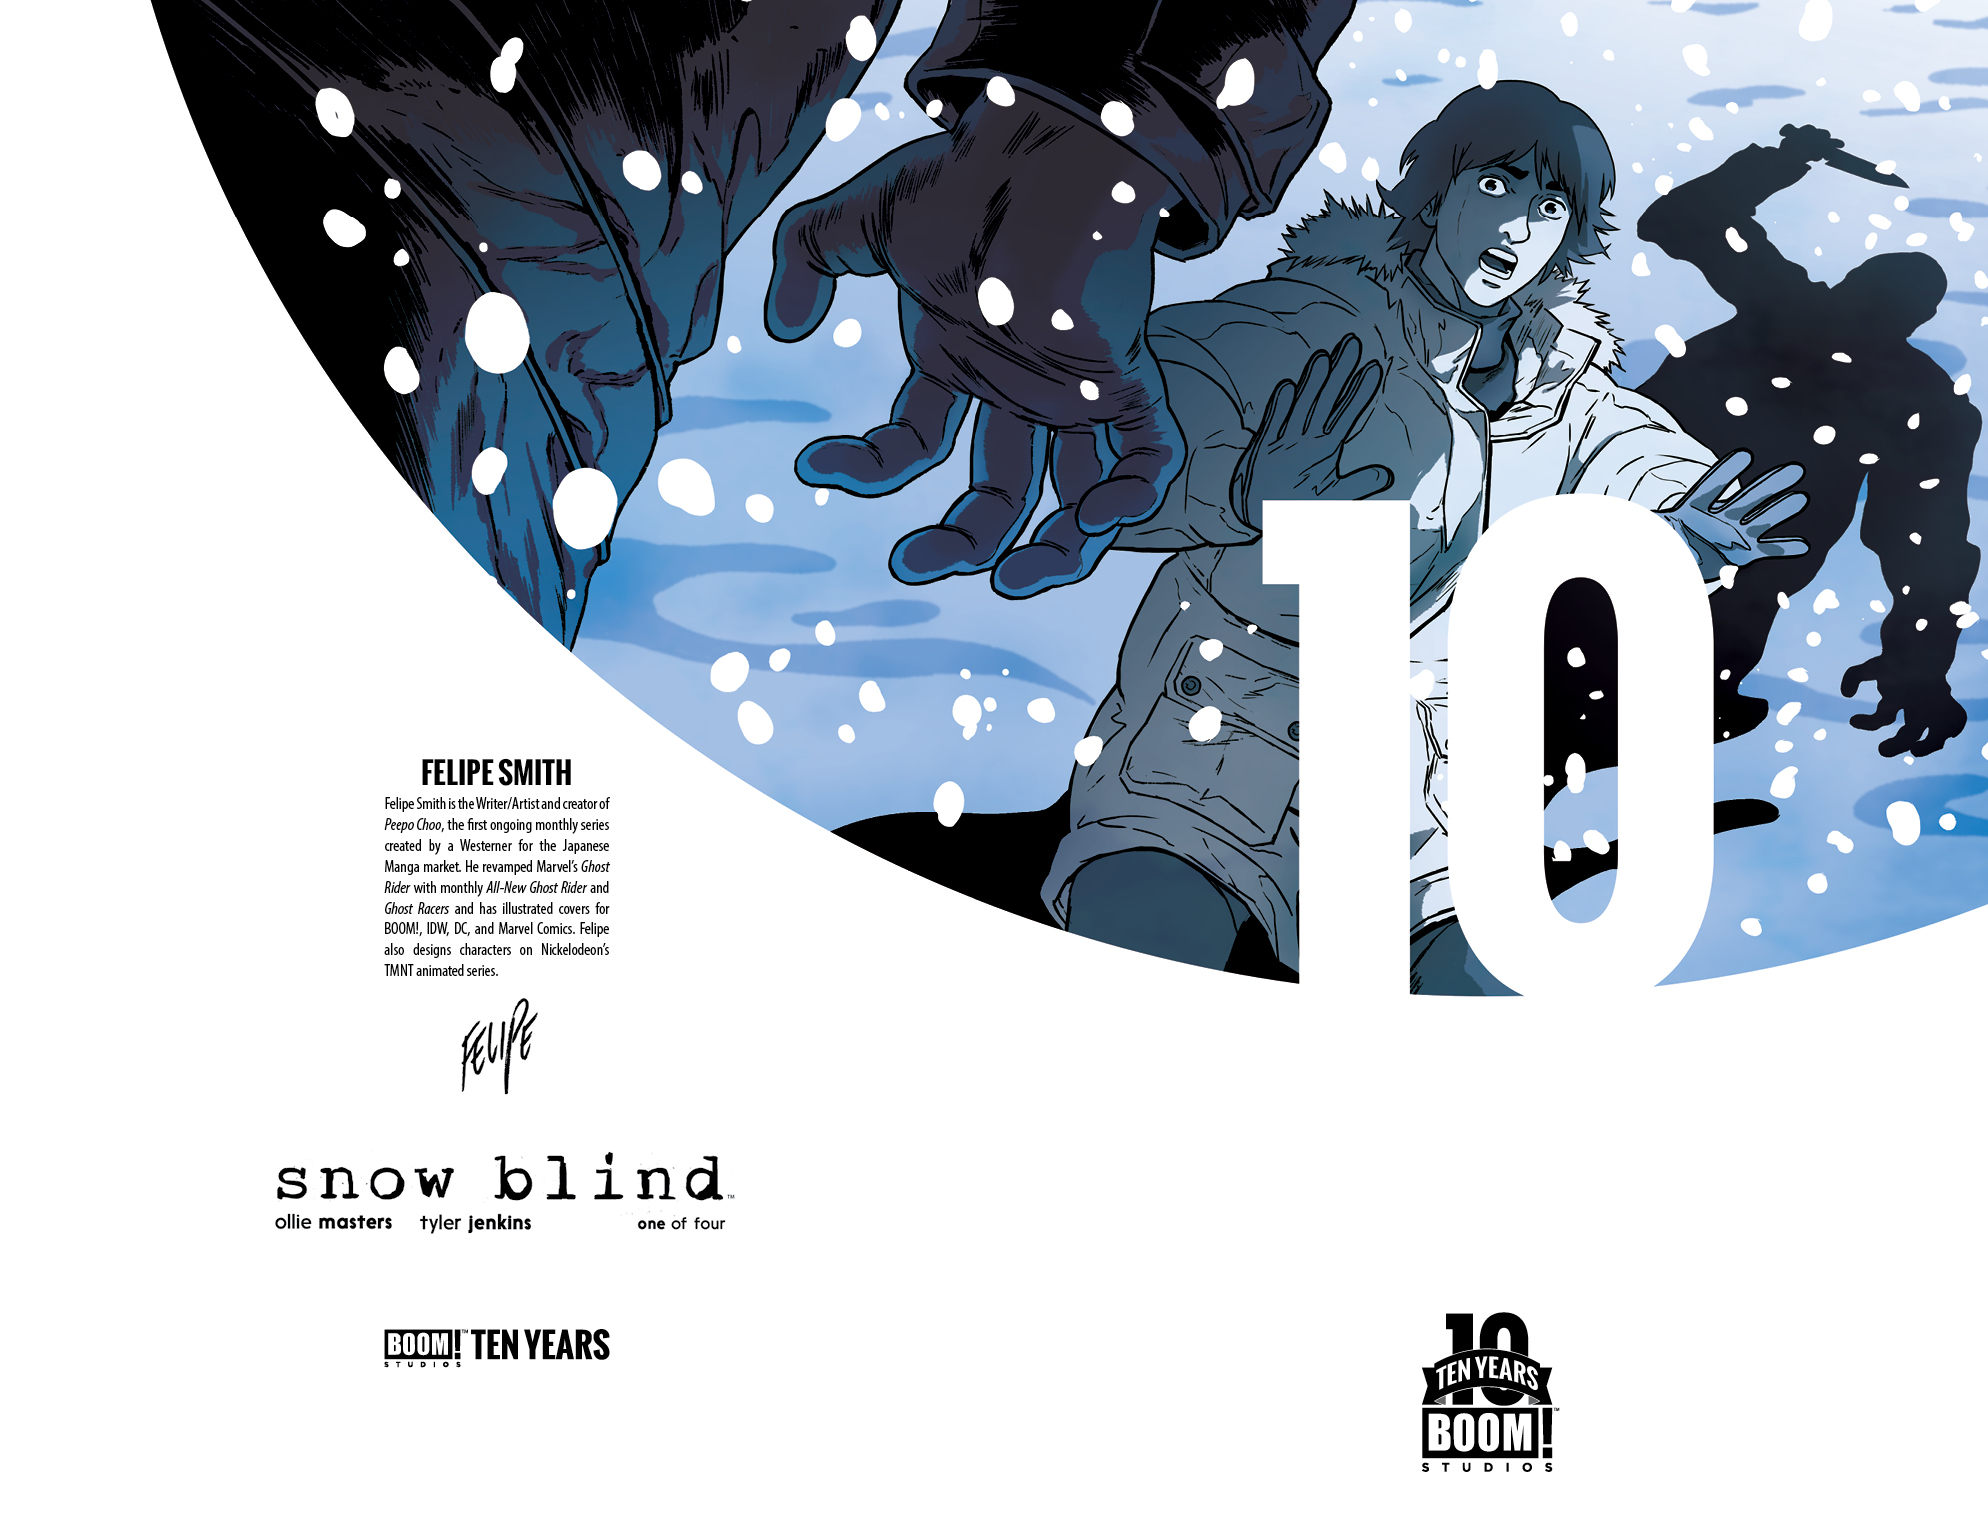 Snow Blind #1 10 Year Cover by Felipe Smith